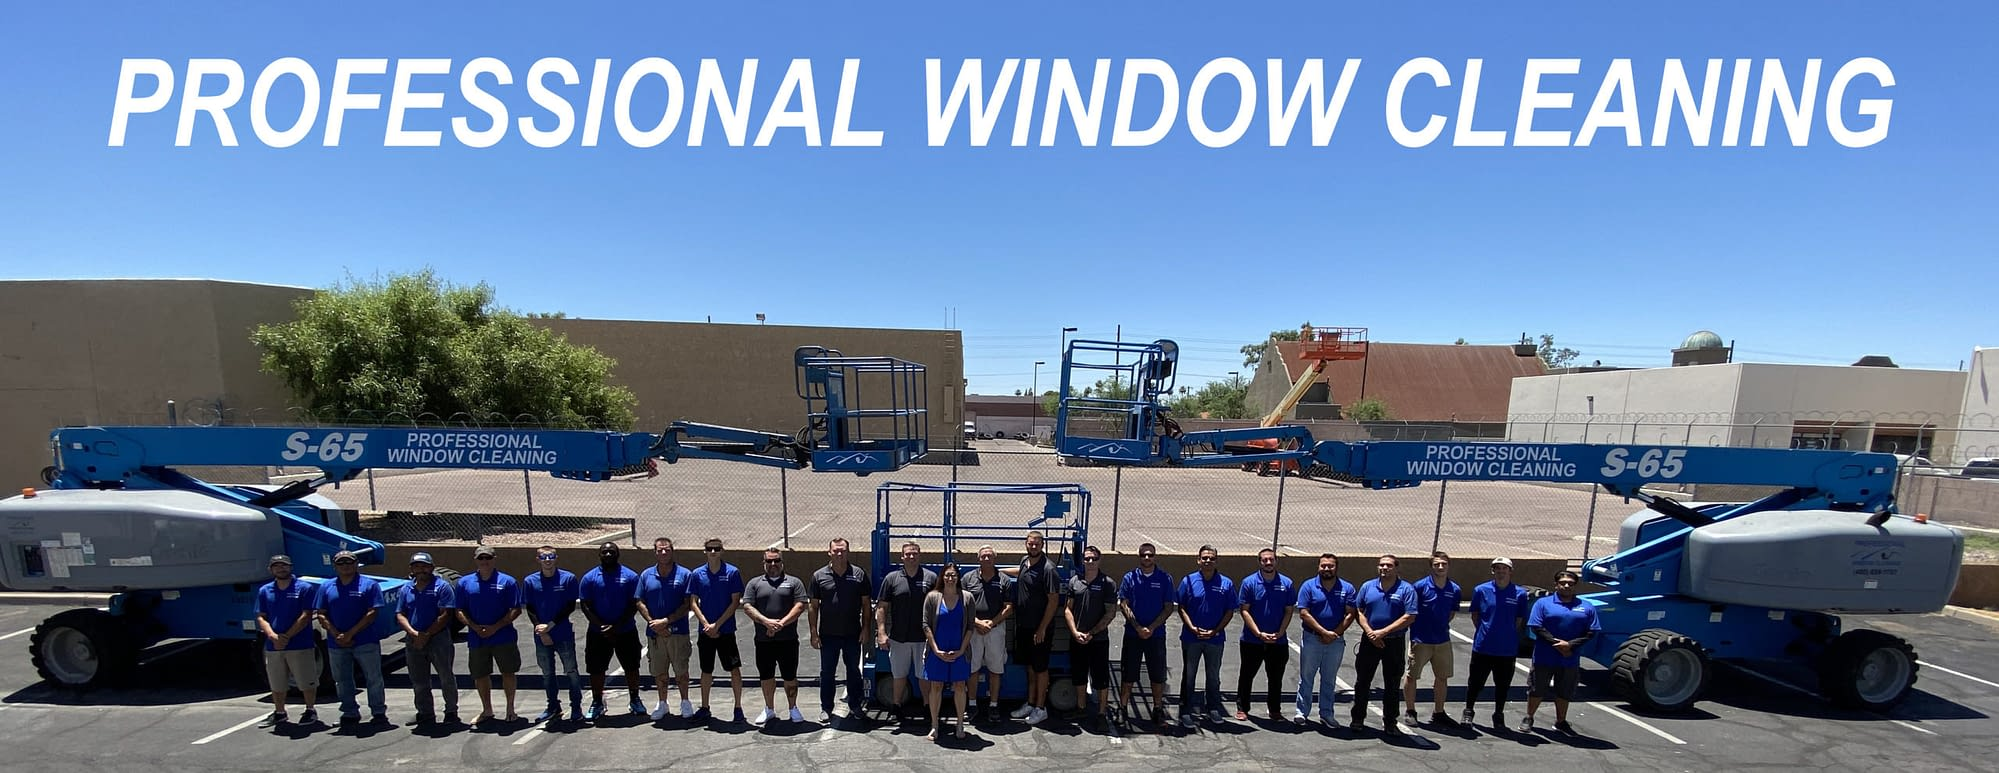 Professional-Window-Cleaning-Team-Picture-in Denver